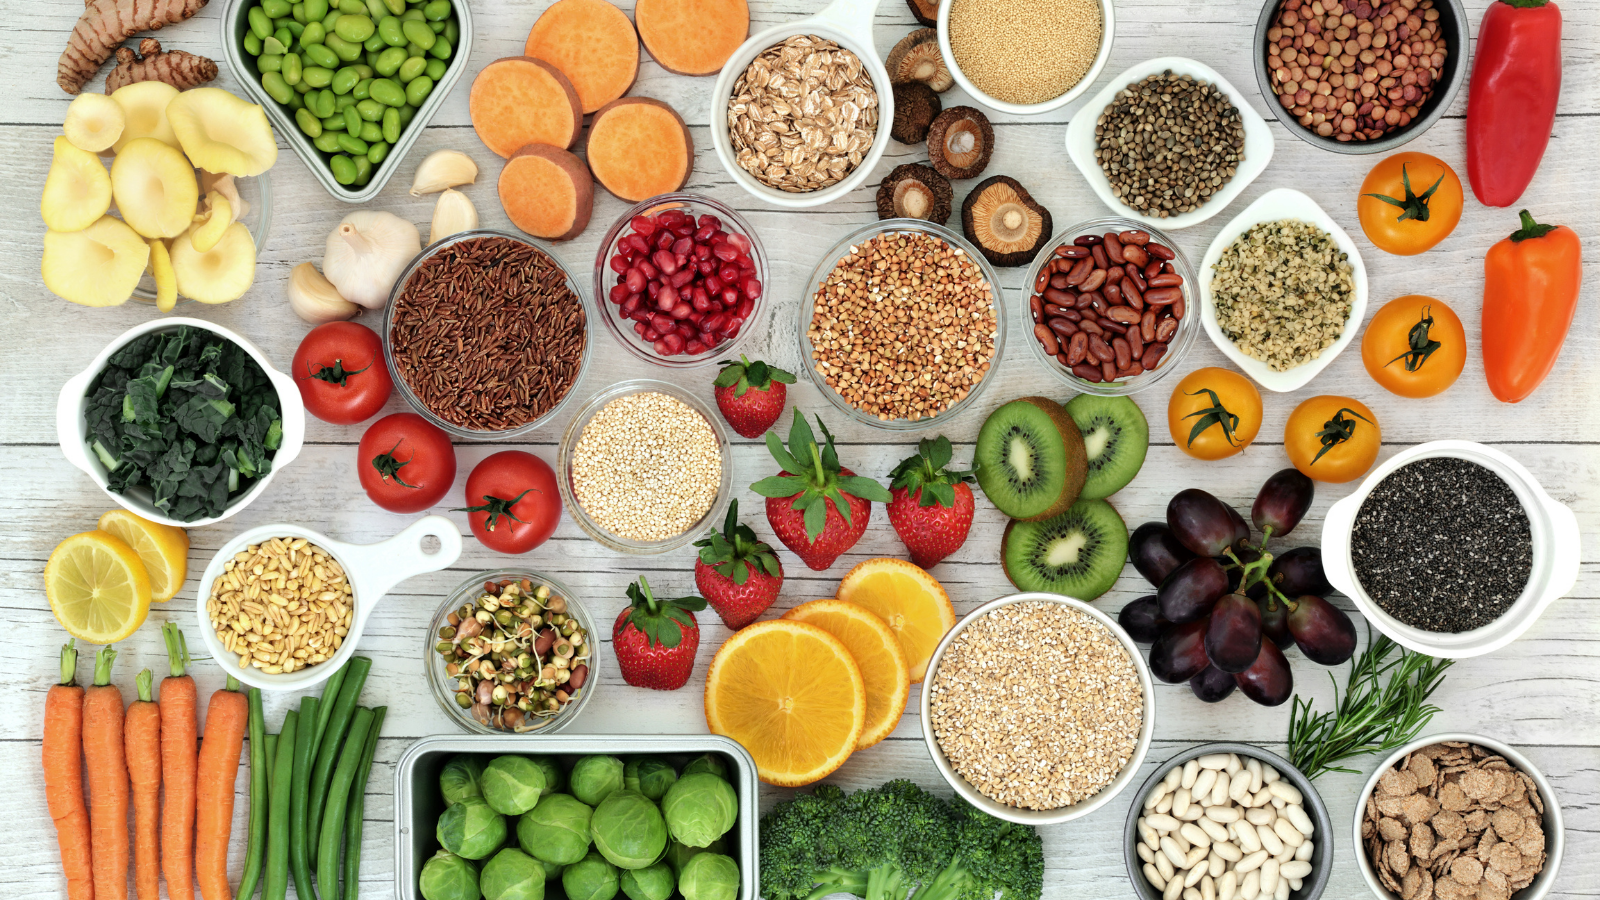 Fresh superfood concept with fruit, vegetables, grains, cereals, pulses, seeds, herbs and spice